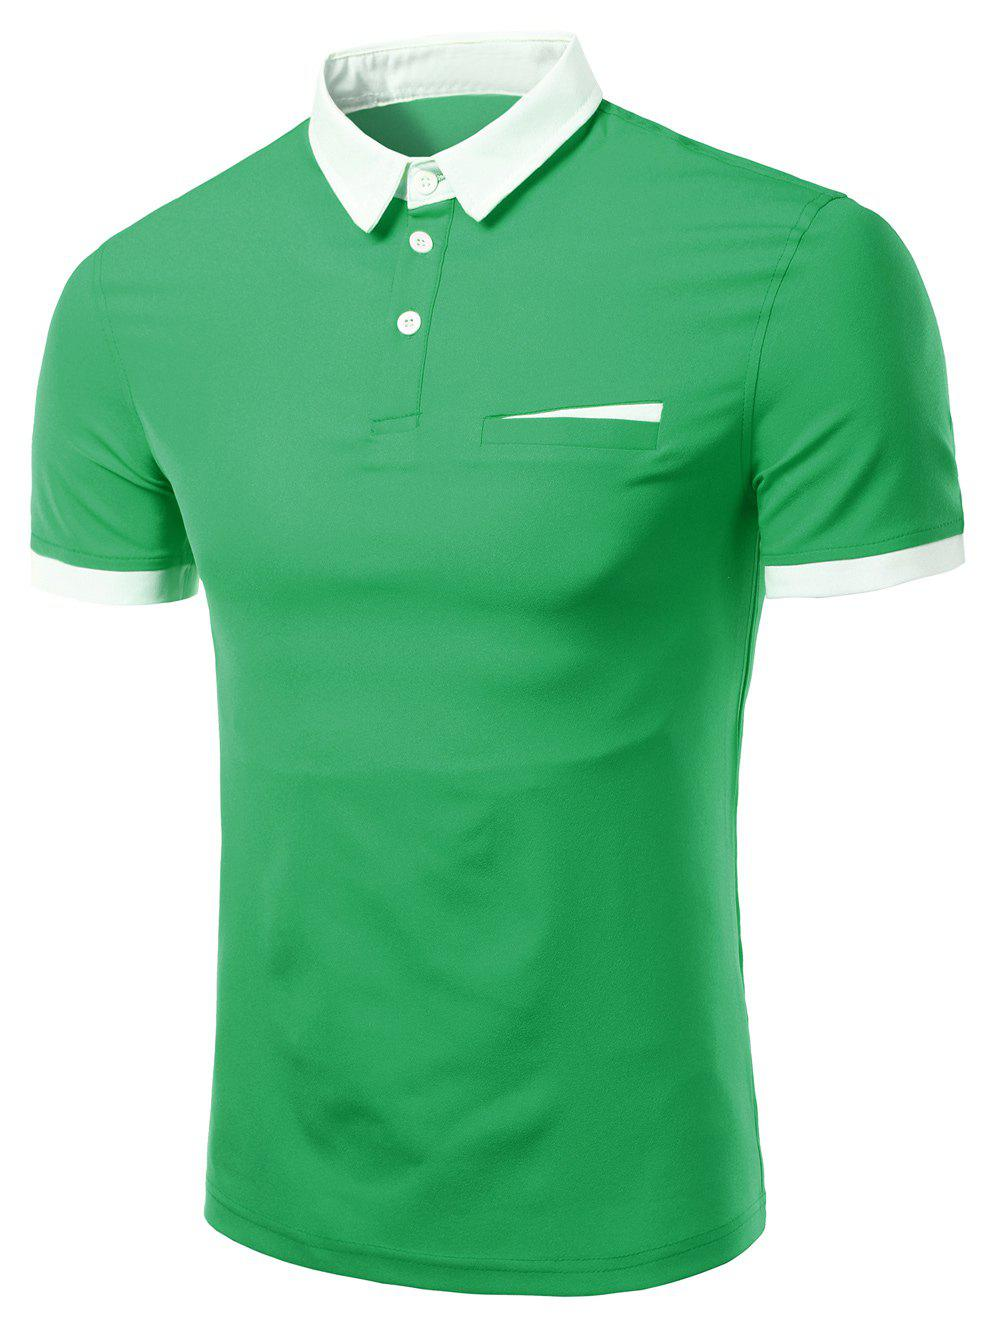 Men's Fashion Turn-down Collar Solid Color Short Sleeves Polo T-Shirt - GREEN XL